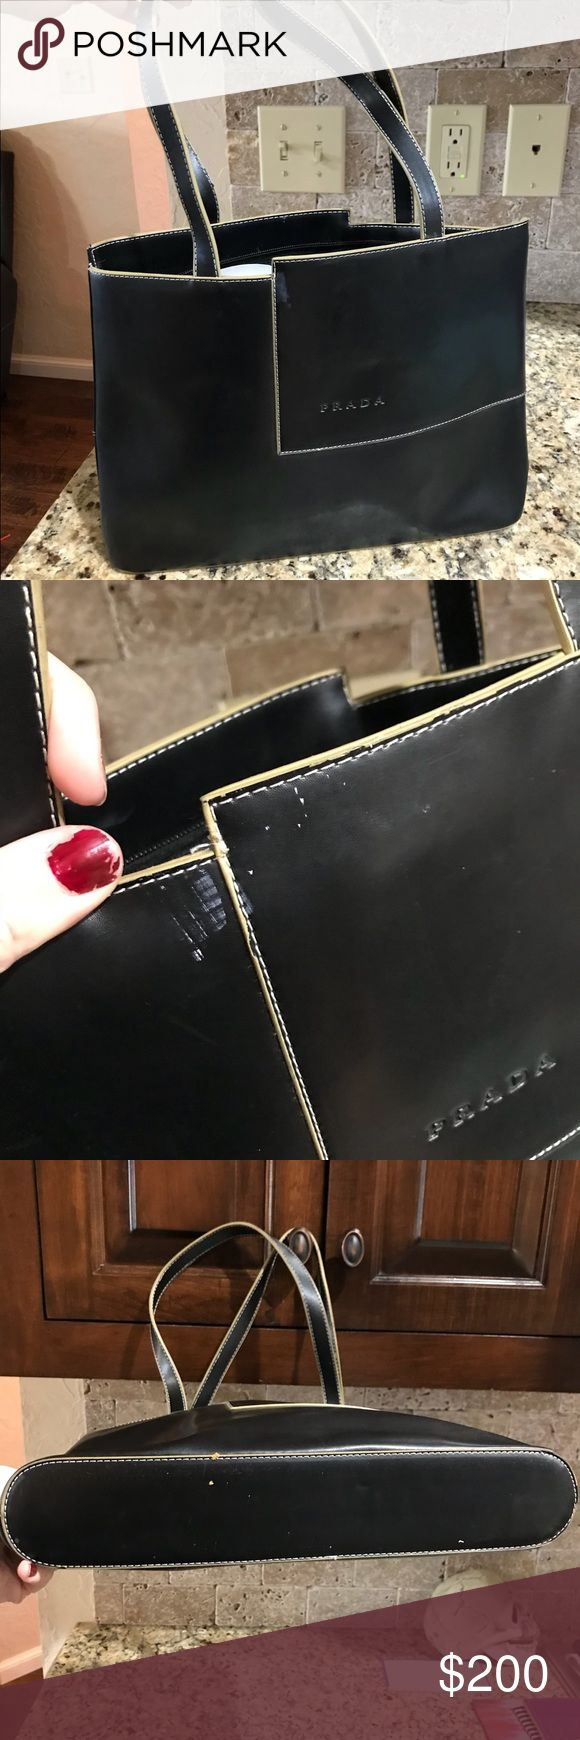 Authentic black Prada bag The cutest little bag for every day essentials 100% authentic. It's definitely been loved and has a few spots that aren't extremely noticeable. There is a hole in the material of the bottom of the bag but could be fixed for like 30 bucks. Price reflects love. Has soooo much life! Prada Bags